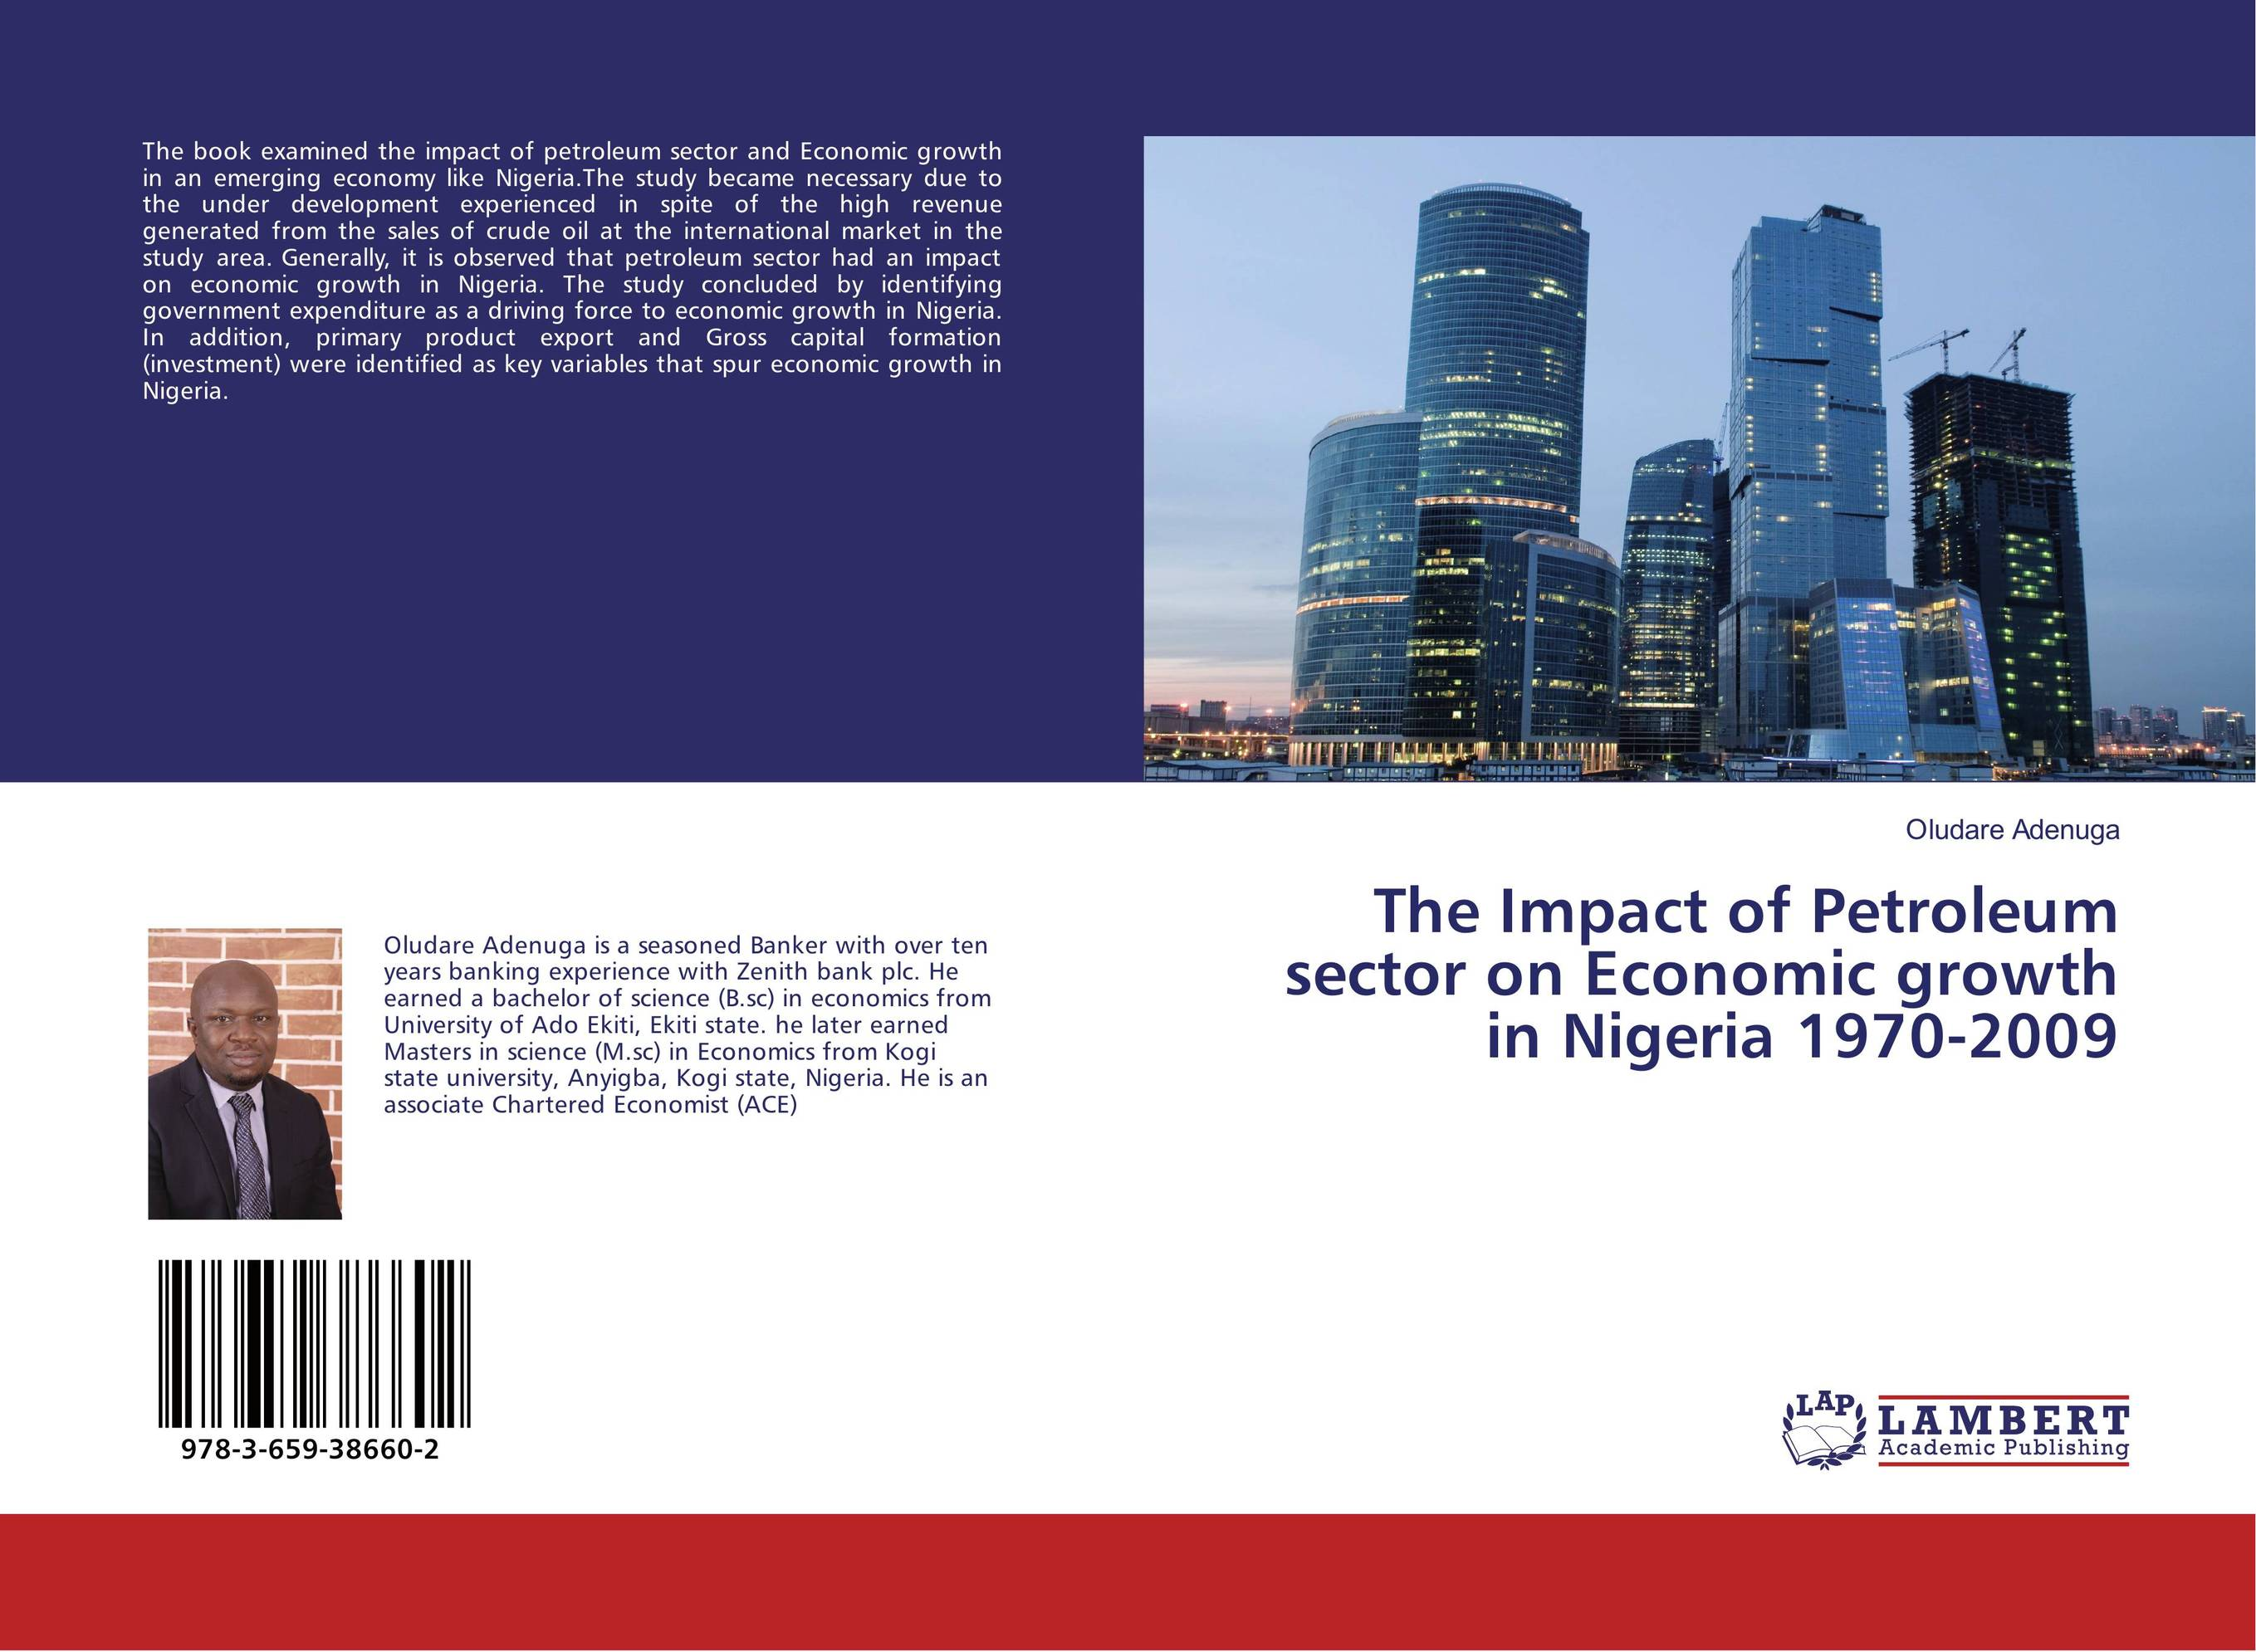 The Impact of Petroleum sector on Economic growth in Nigeria 1970-2009 купить